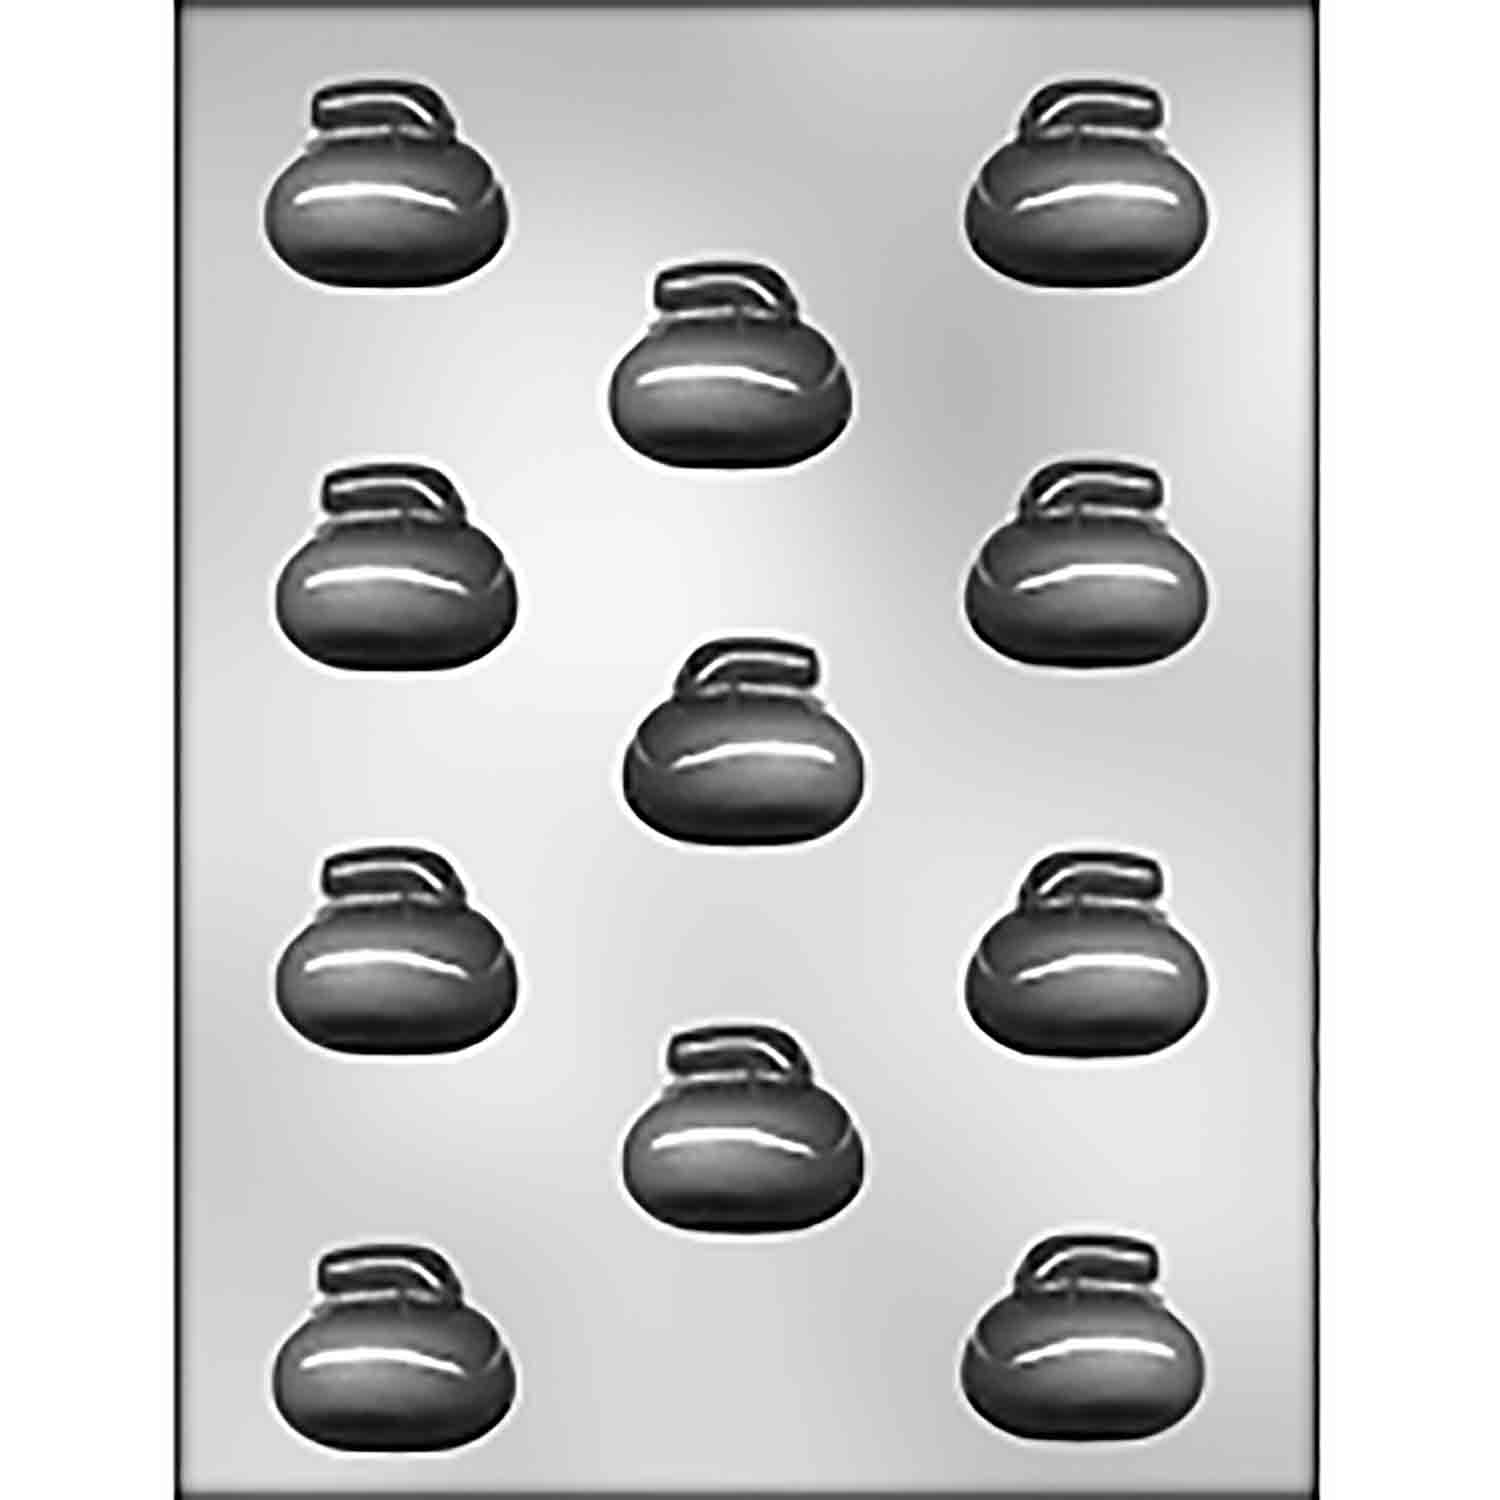 3D Curling Rock Chocolate Candy Mold